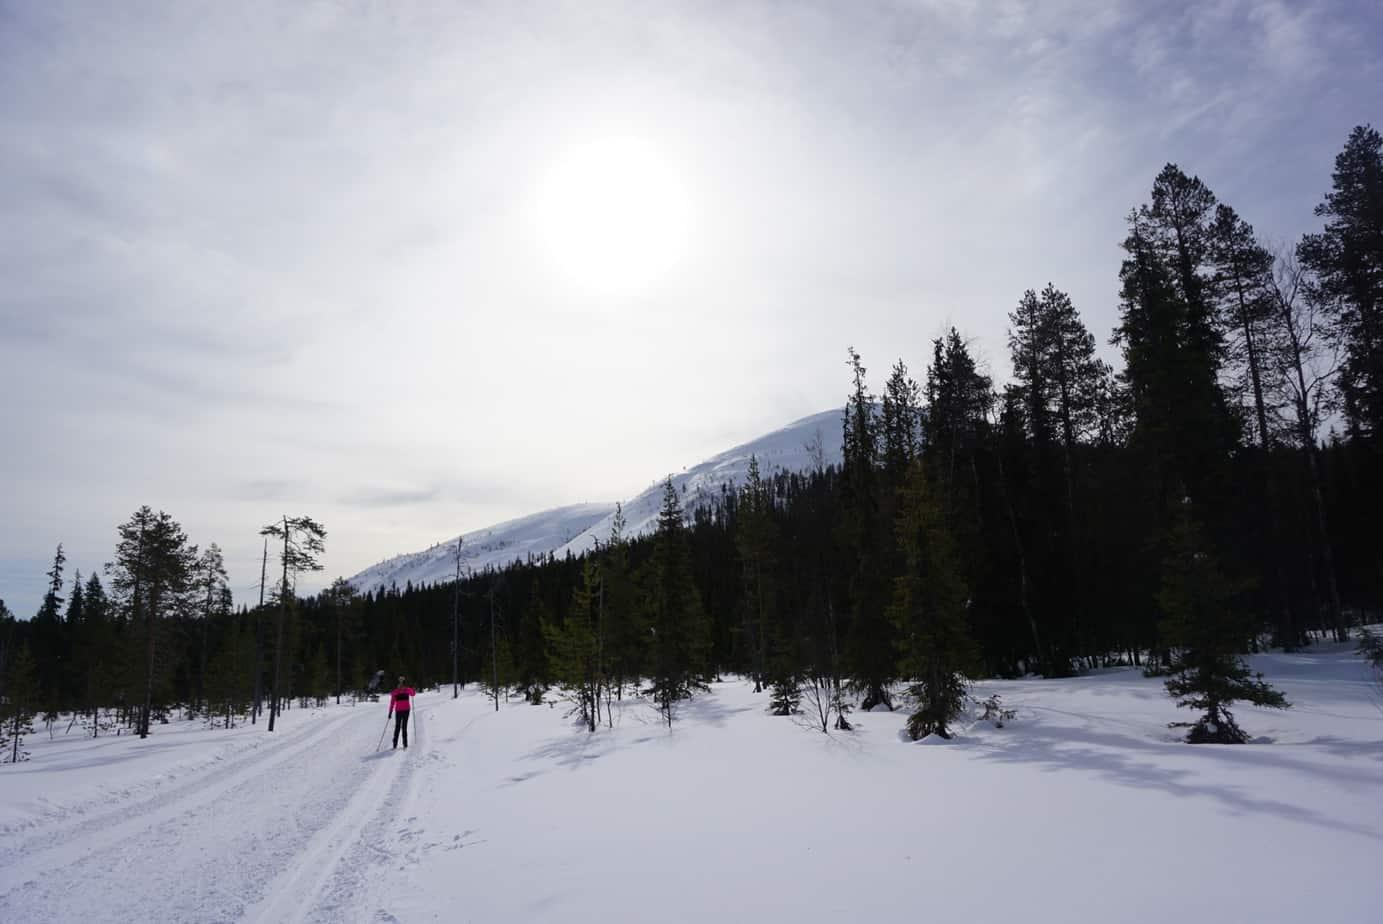 Yllas ski resort has over 300 kms of ski trails